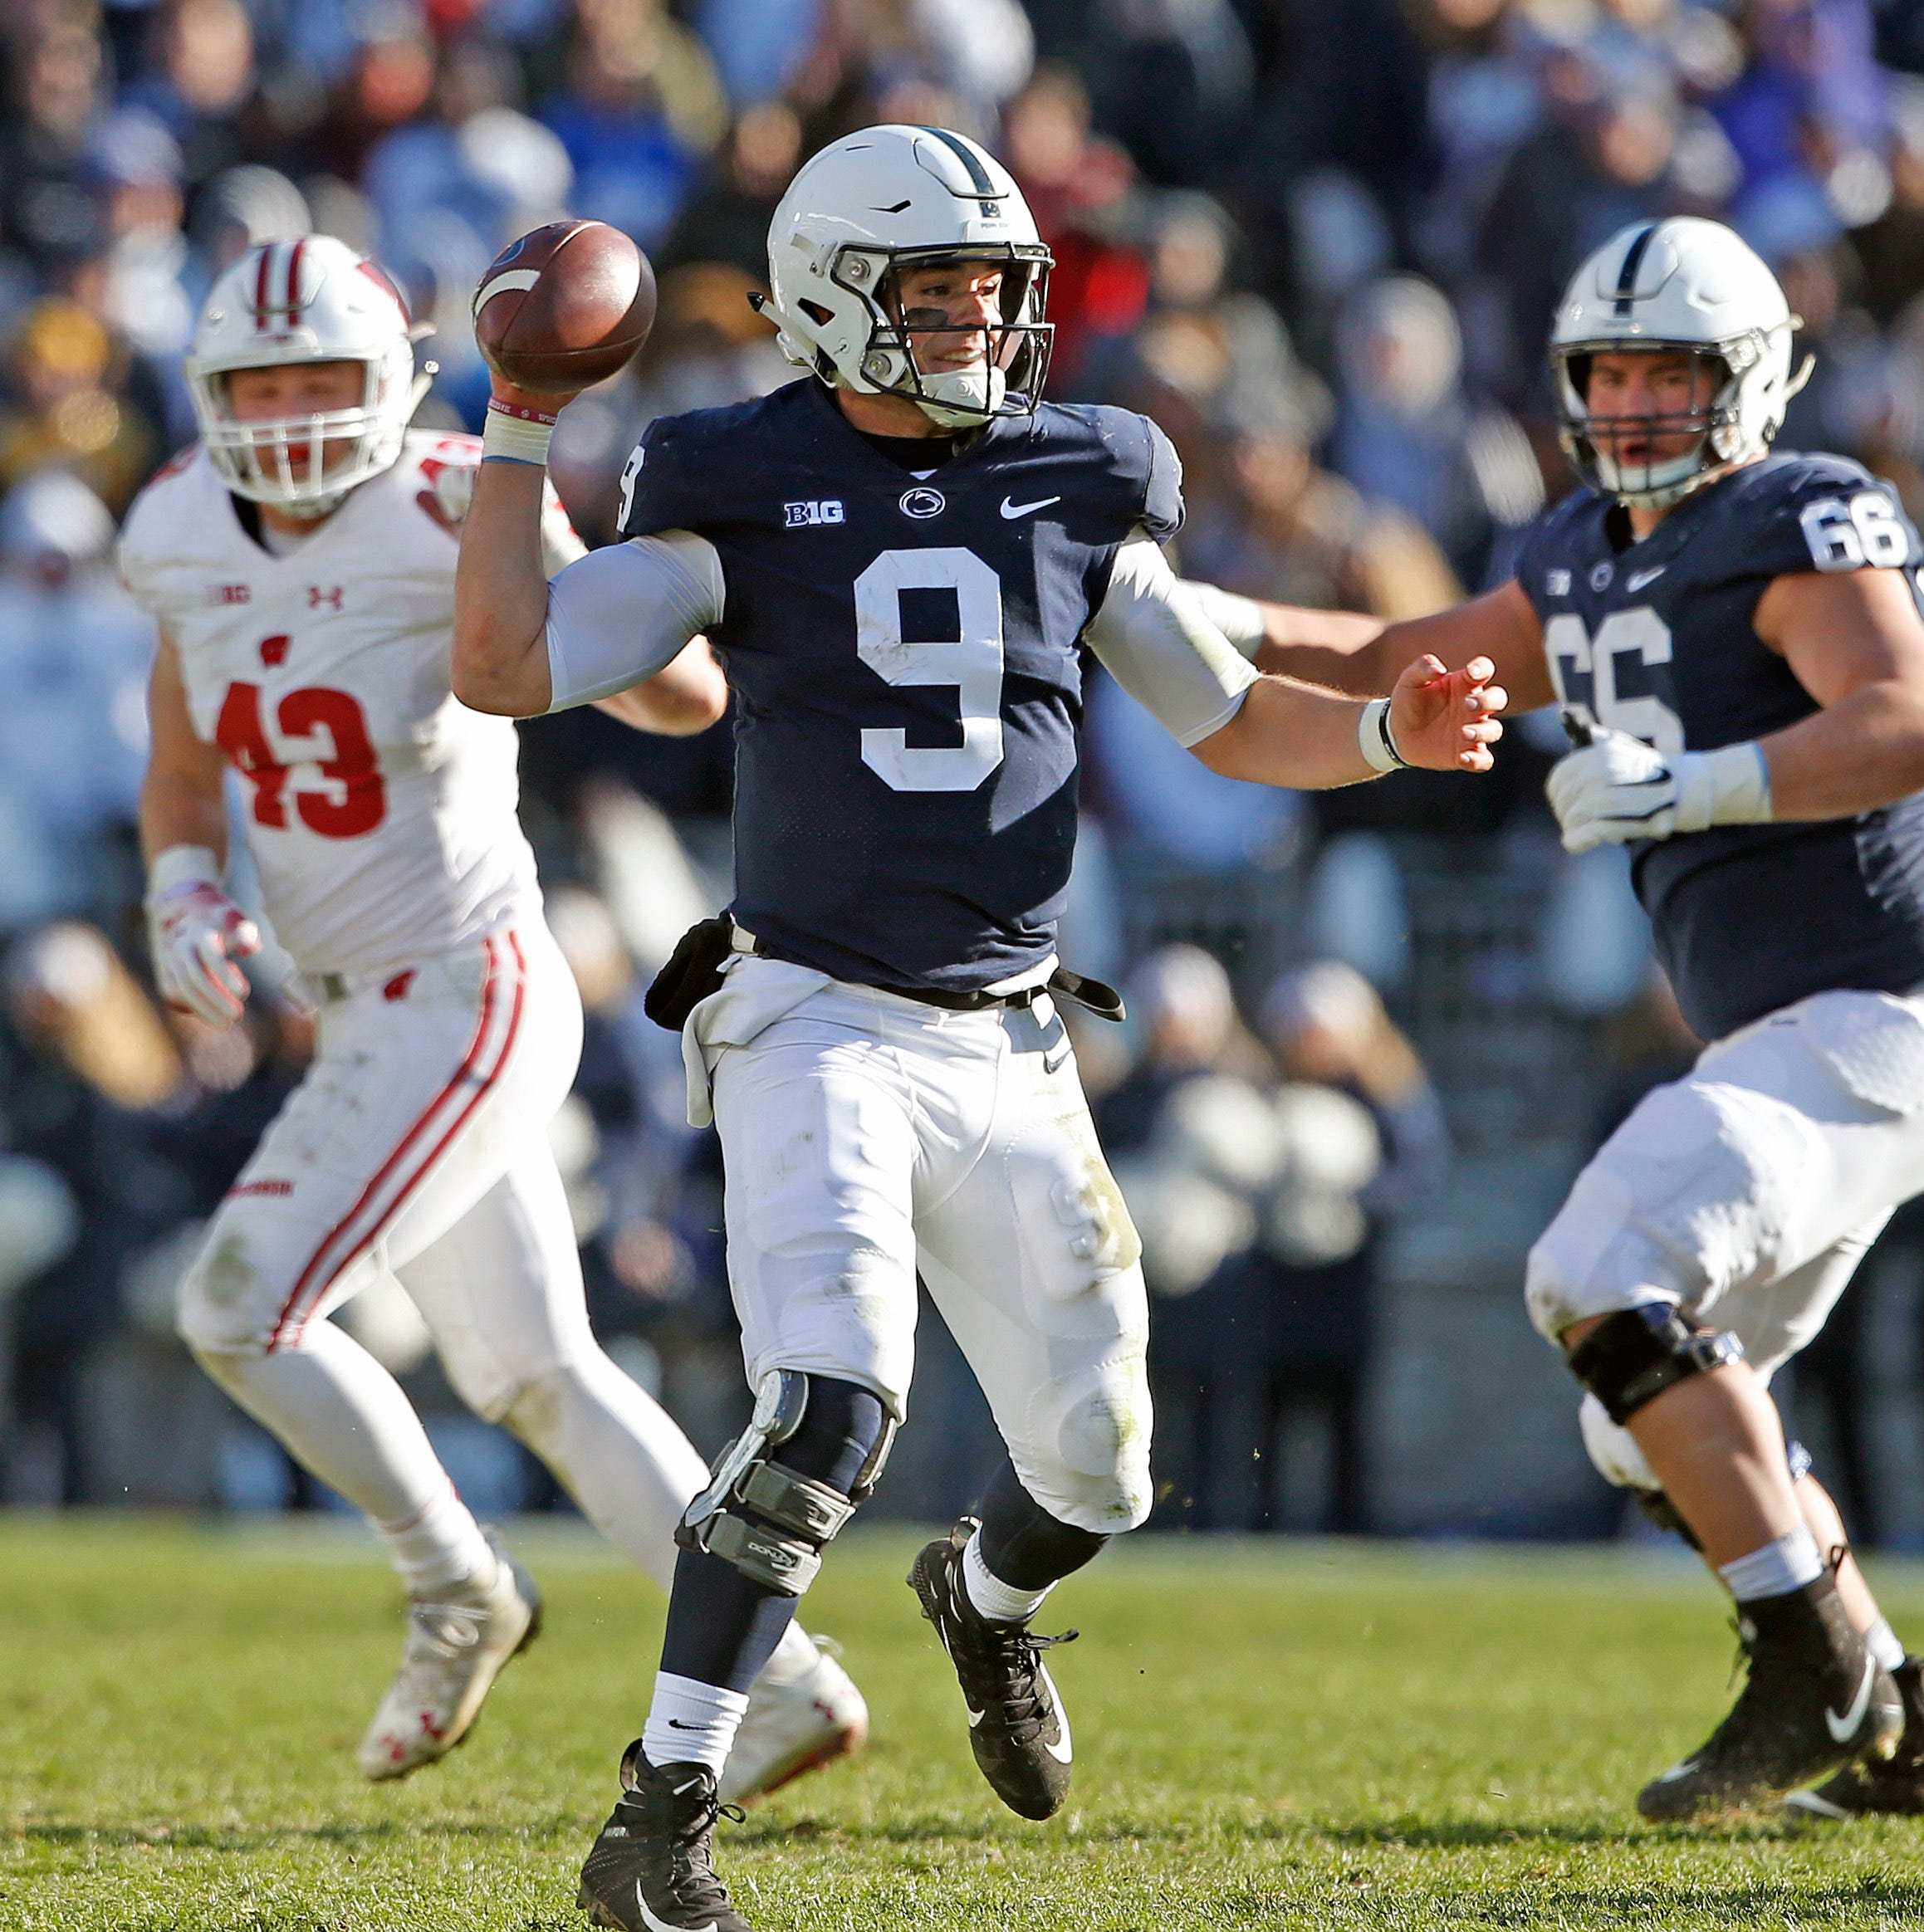 Penn State quarterback Trace McSorley (9) looks to pass the ball against as he is pressured out of the pocket against Wisconsin during the second half of an NCAA college football game in State College, Pa., Saturday, Nov. 10, 2018. Penn State won 22-10.